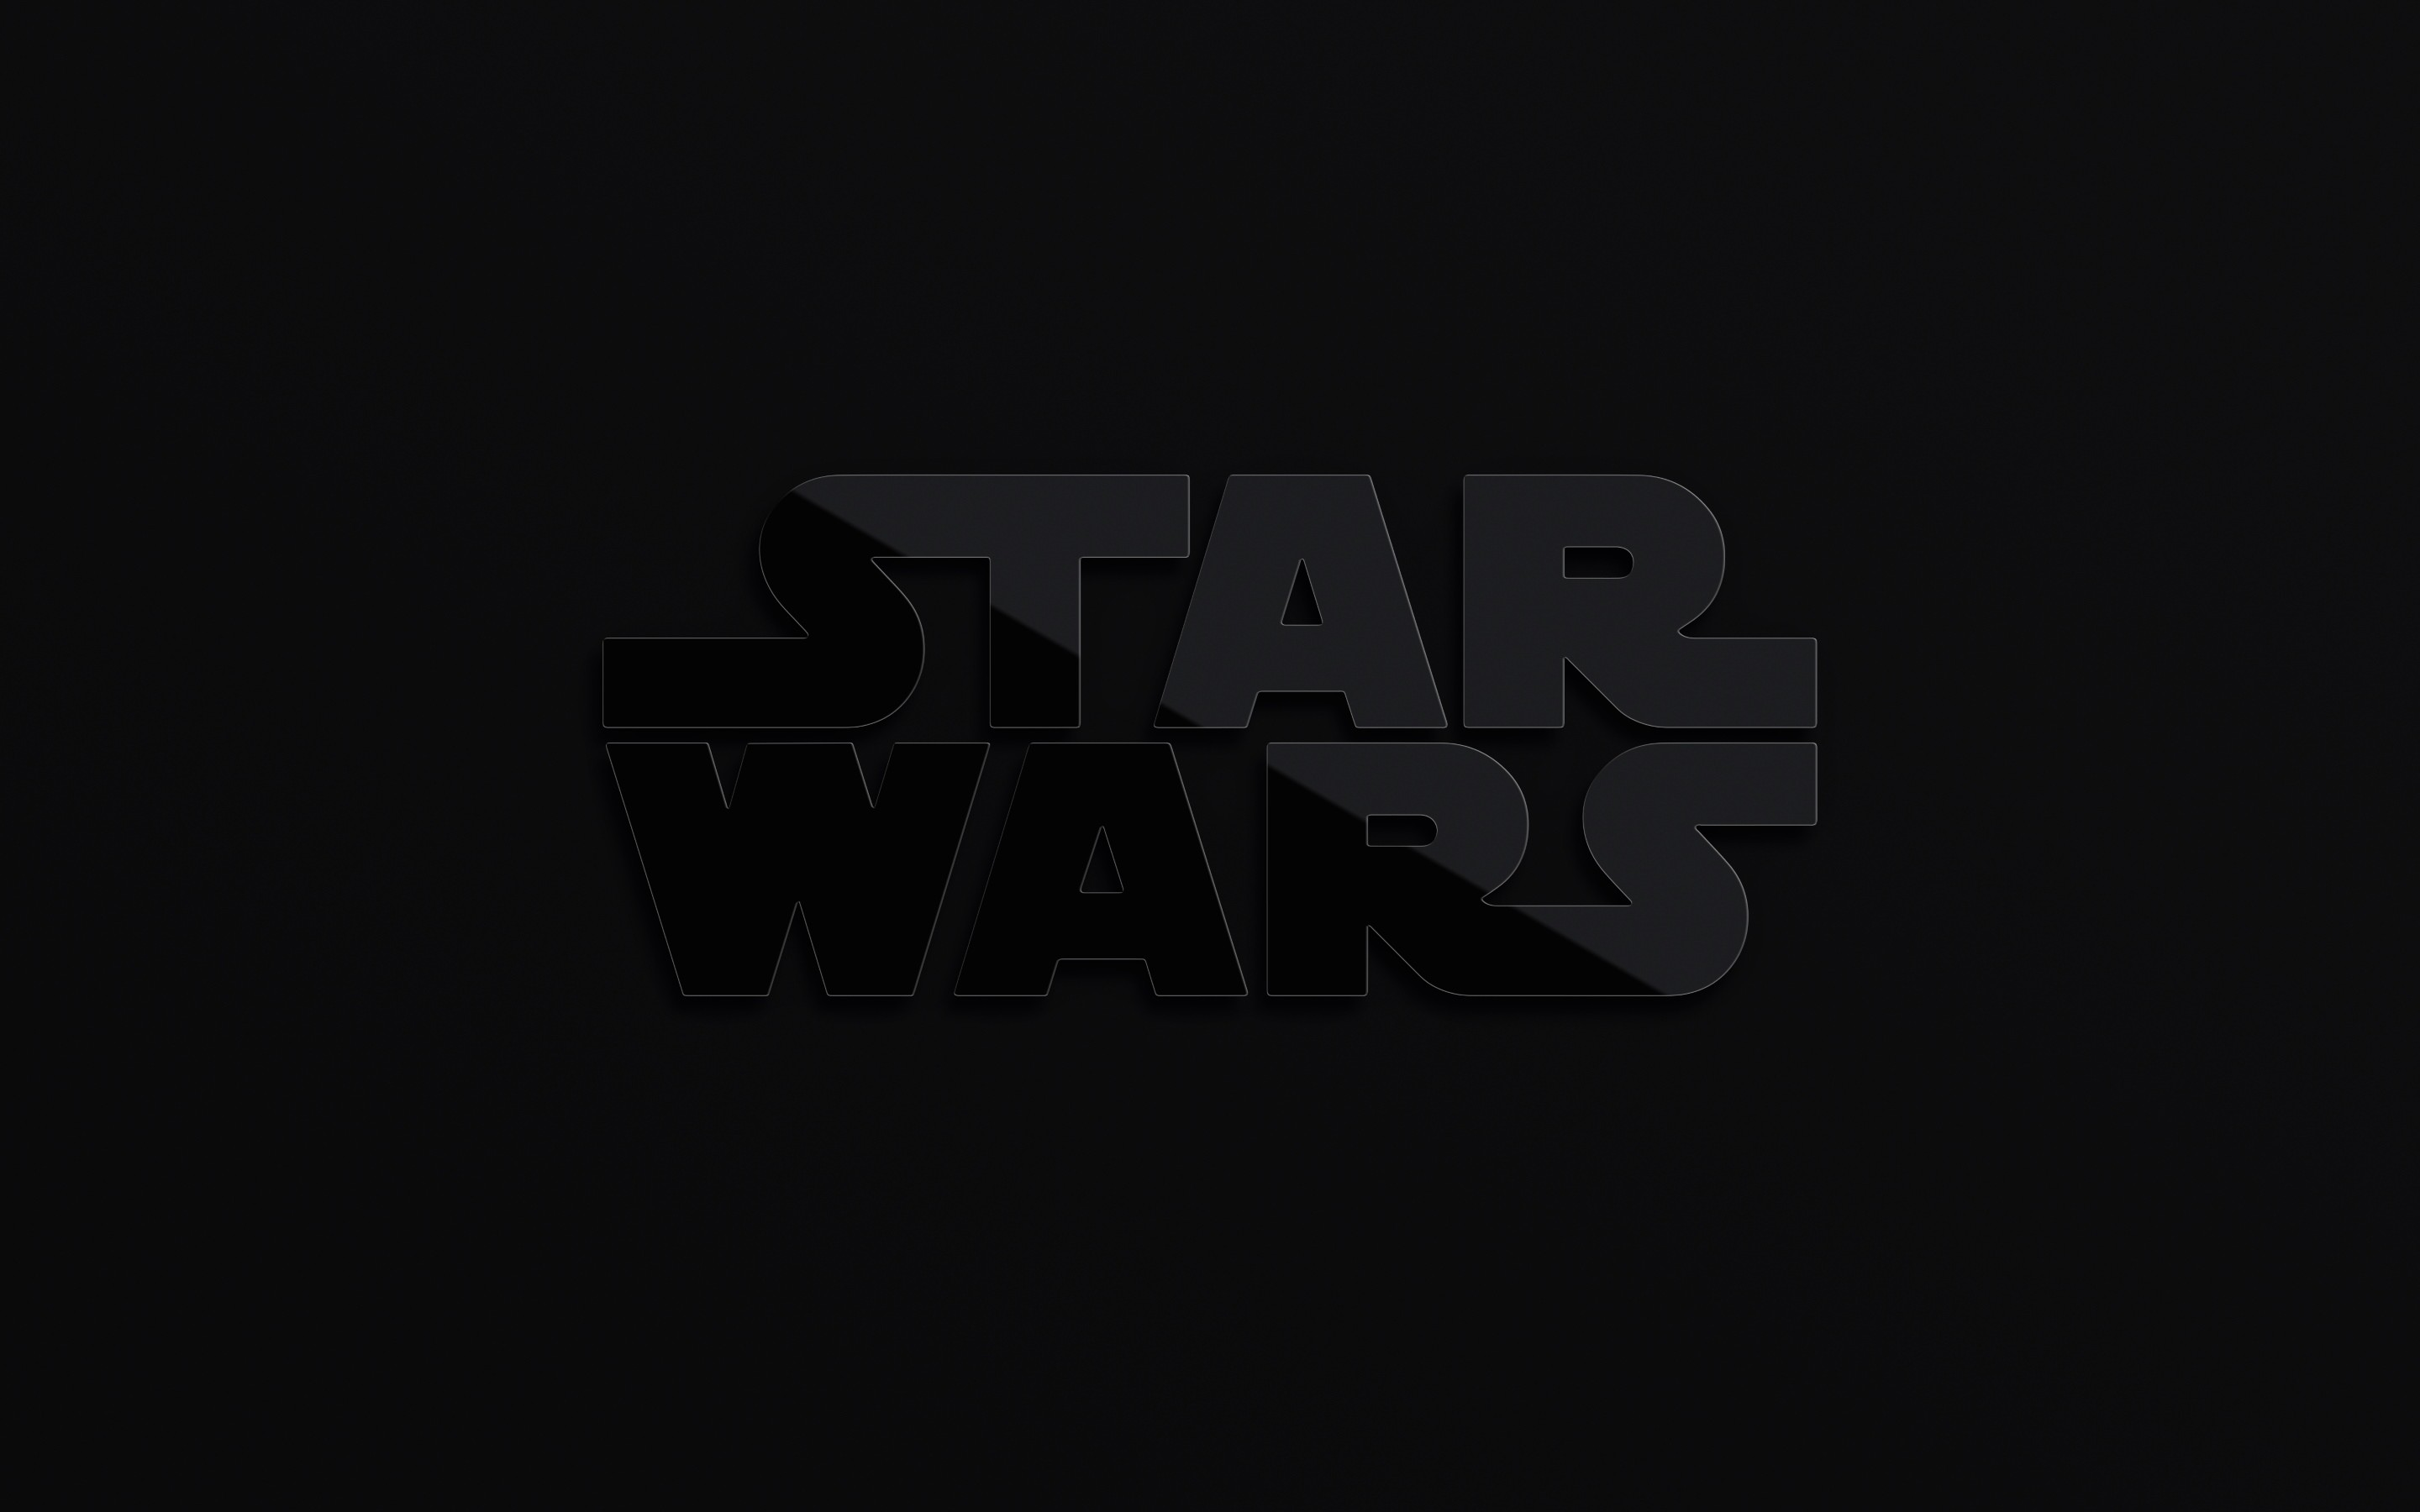 Star Wars High Res Images Posted By John Peltier